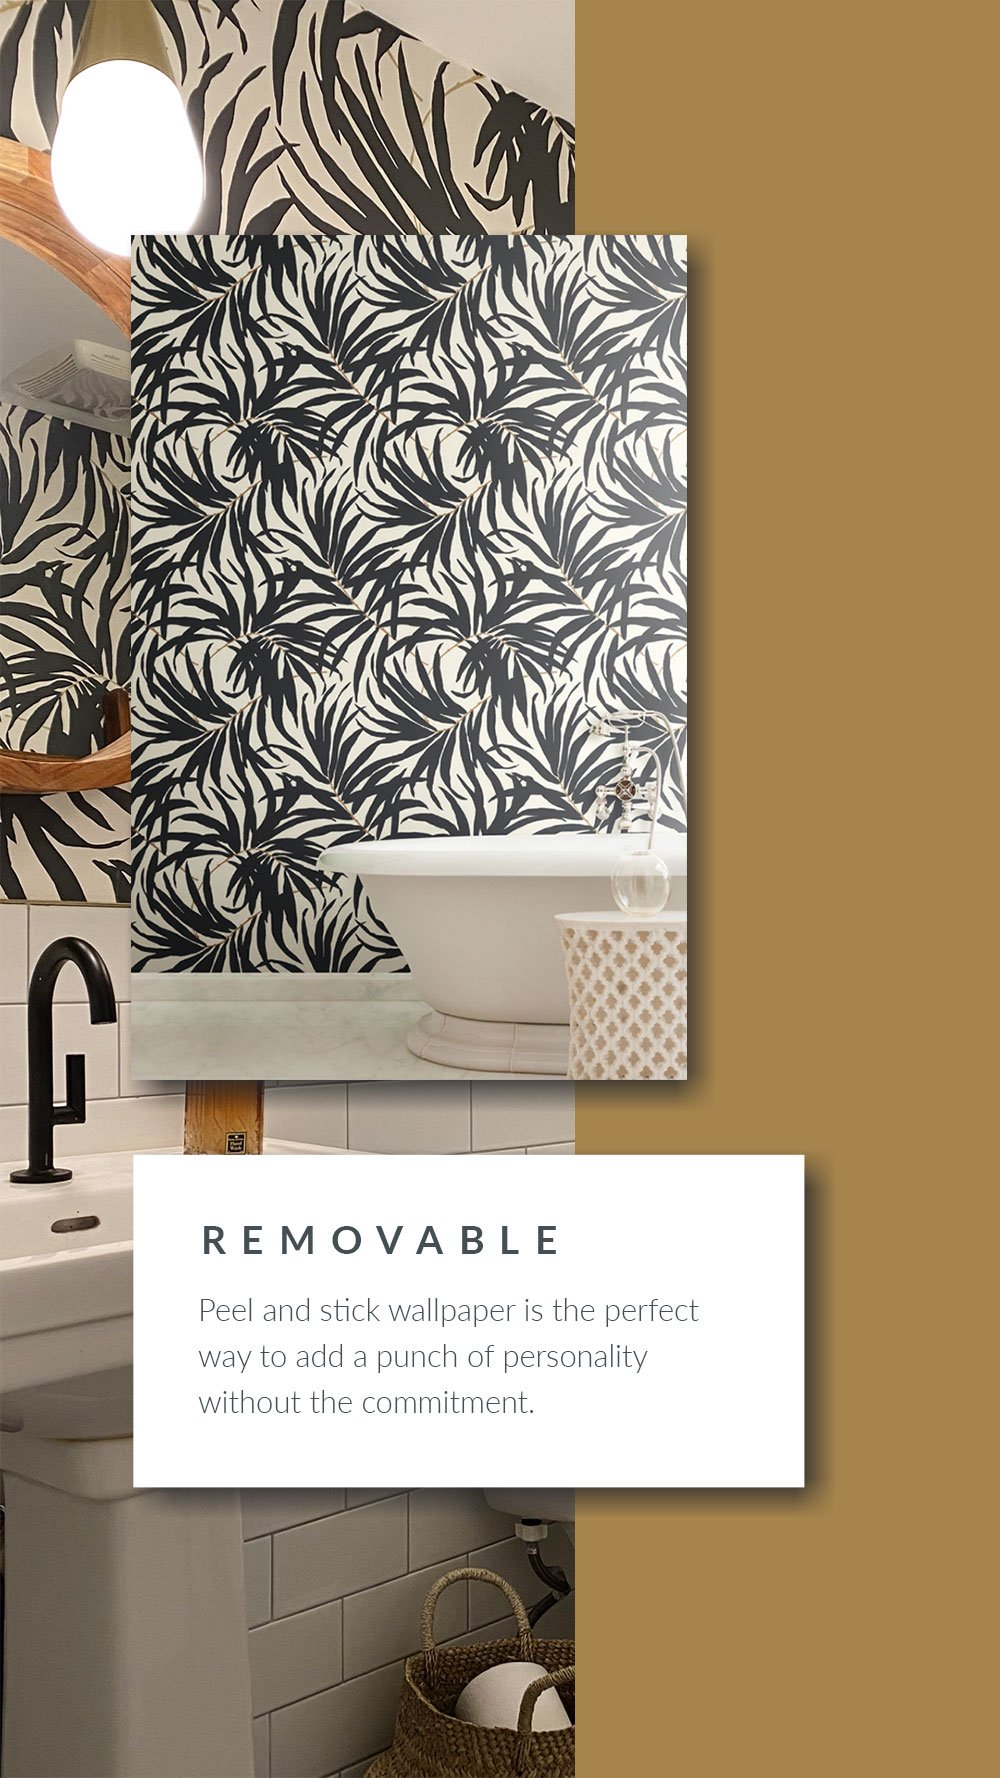 Find the Best Peel and Stick Removable Wallpaper